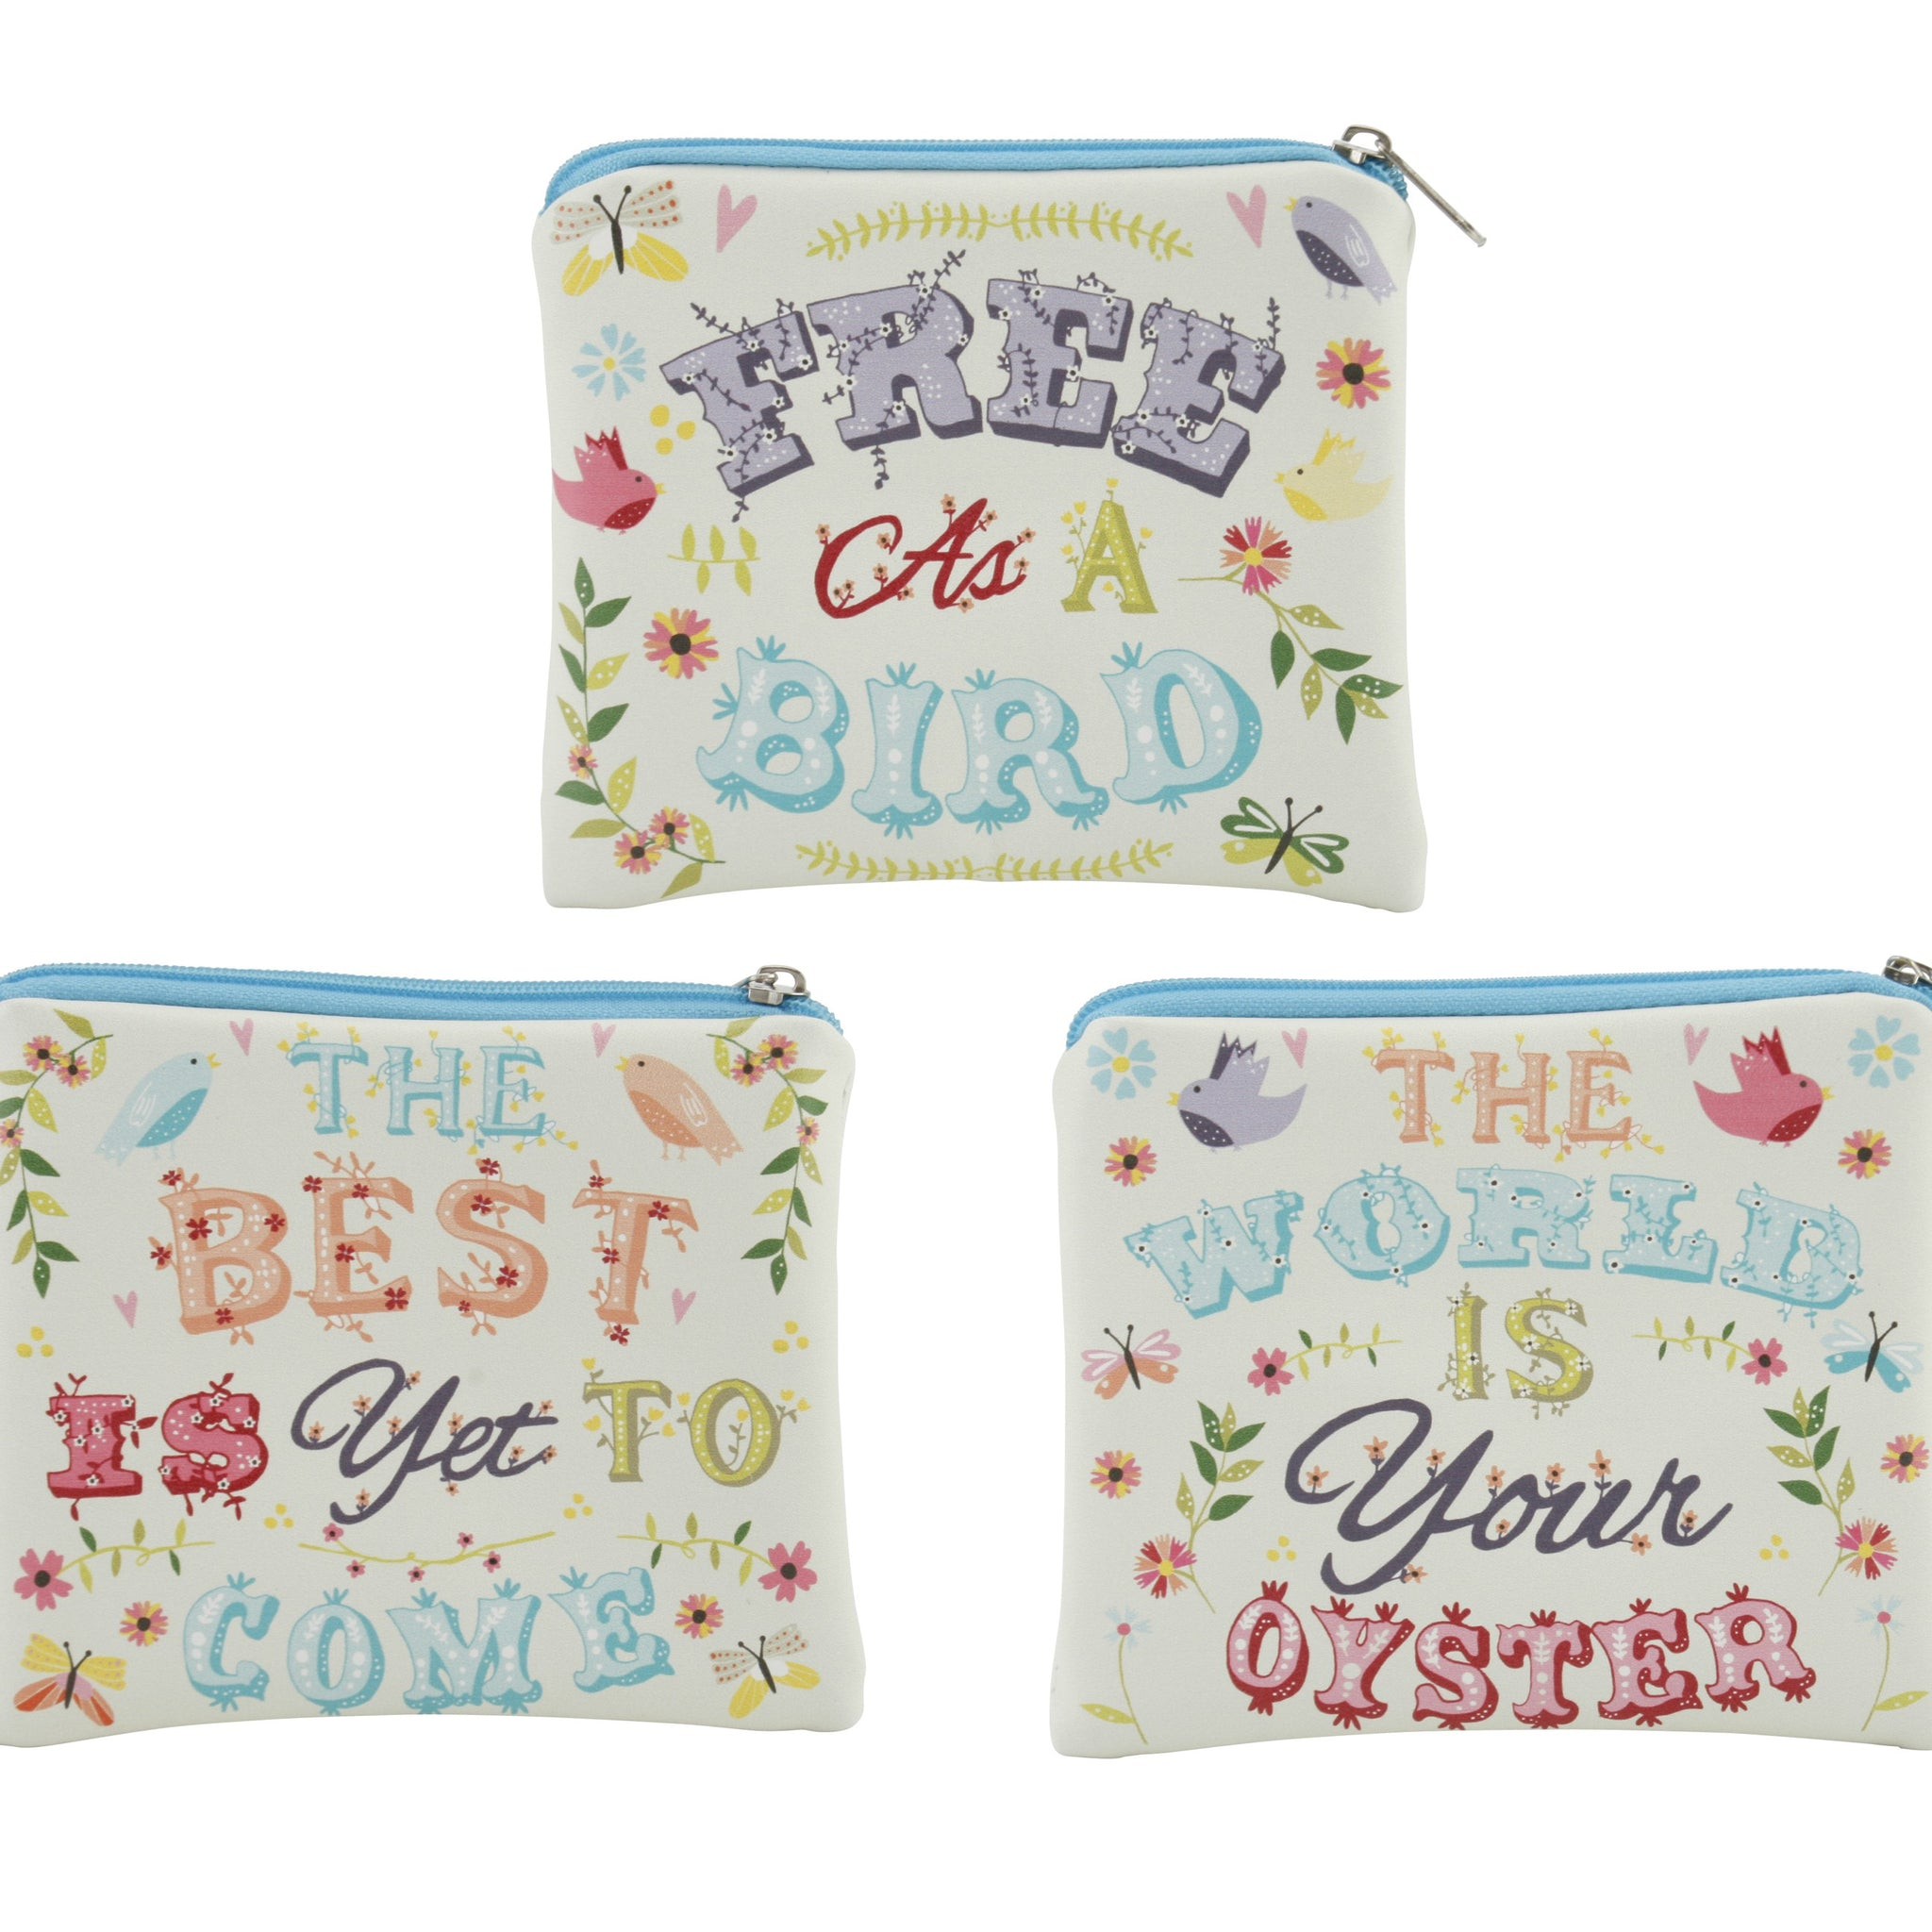 Pretty coin purse with fun floral and bird pastel design with choice of slogans